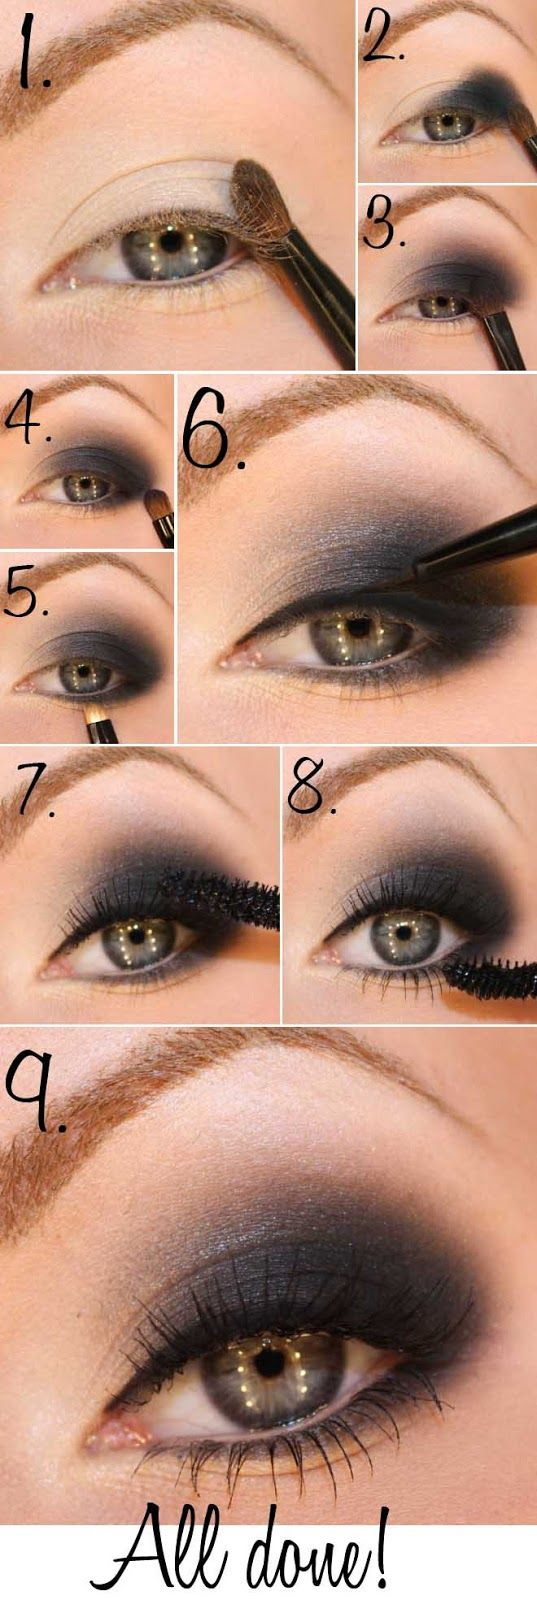 Discussion on this topic: The Best Party-Ready Eye Makeup, the-best-party-ready-eye-makeup/